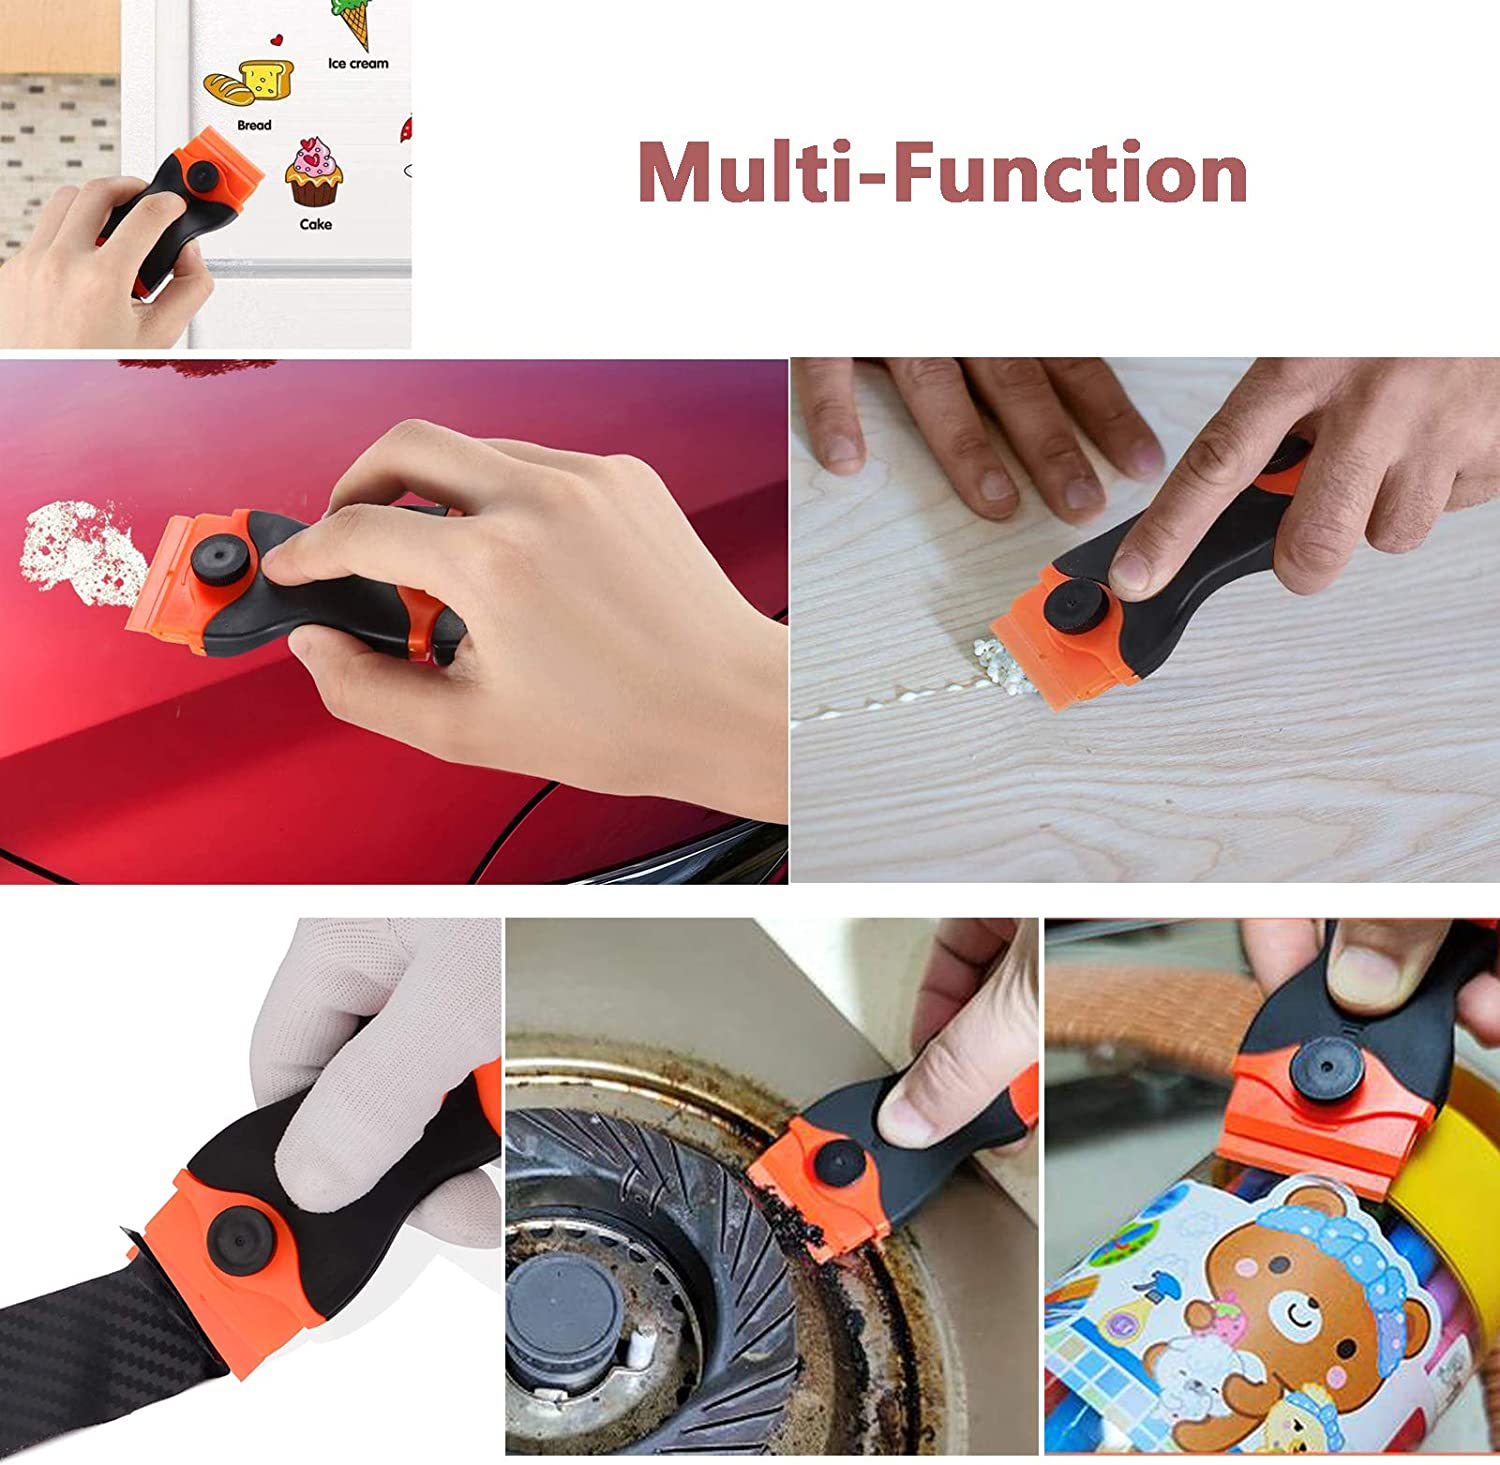 Mini Razor Scraper for Removing Glue Residue 2 in 1 Razor Blade Scraper with 10 Pcs Plastic Safety Blades and 10 Pcs Carbon Steel Blades for Removing Labels//Stickers//Decals//Glue Residue from Glass Window Cooktop Paint Stove top